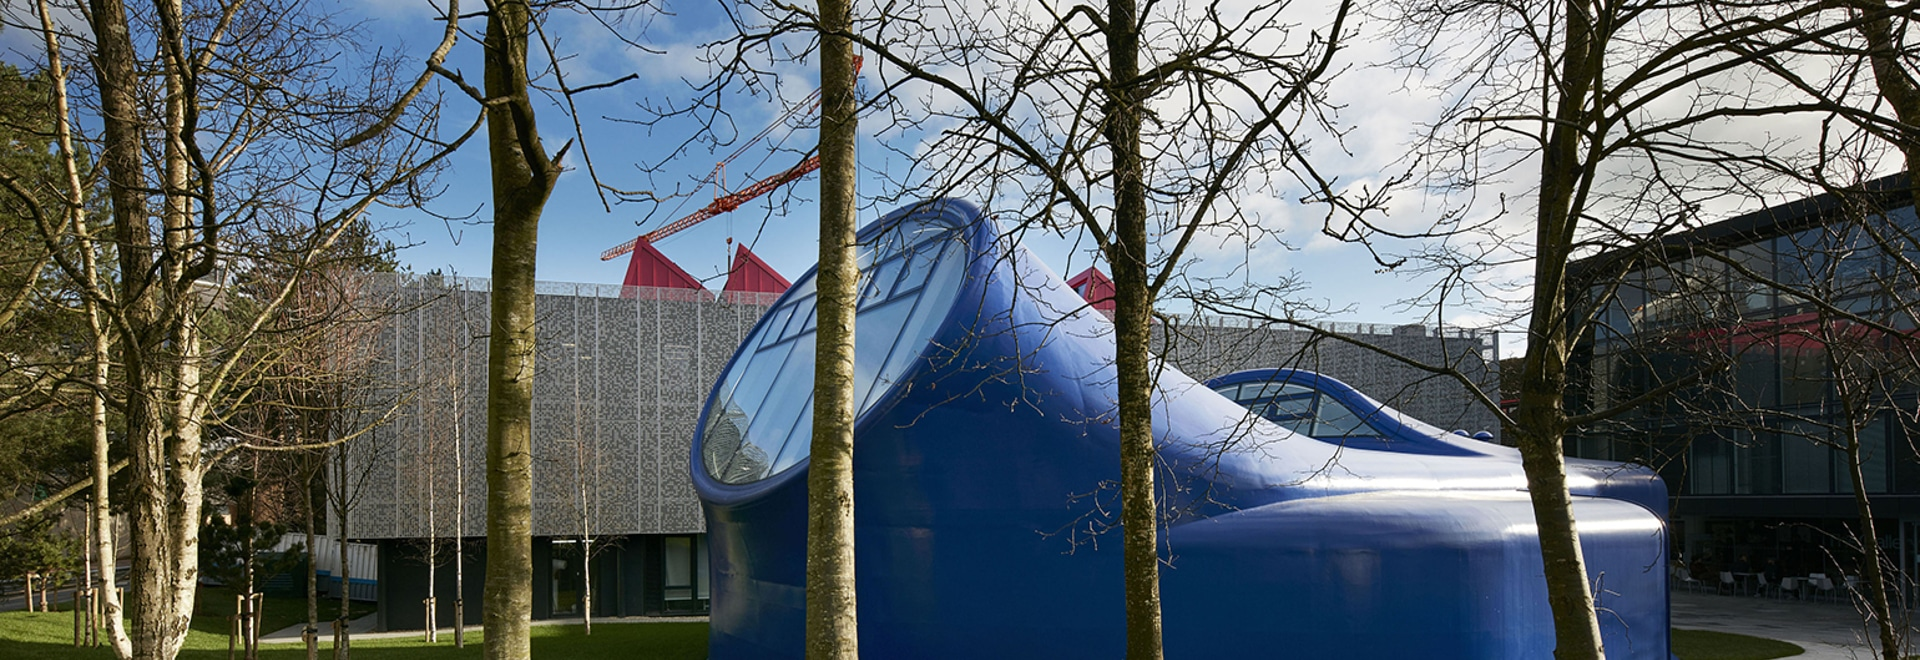 Sir Peter Cook and his office CRAB (Cook Robotham Architectural Bureau) have just completed the drawing studio at the Arts University Bournemouth - the first of its kind to be built in the UK in 10...